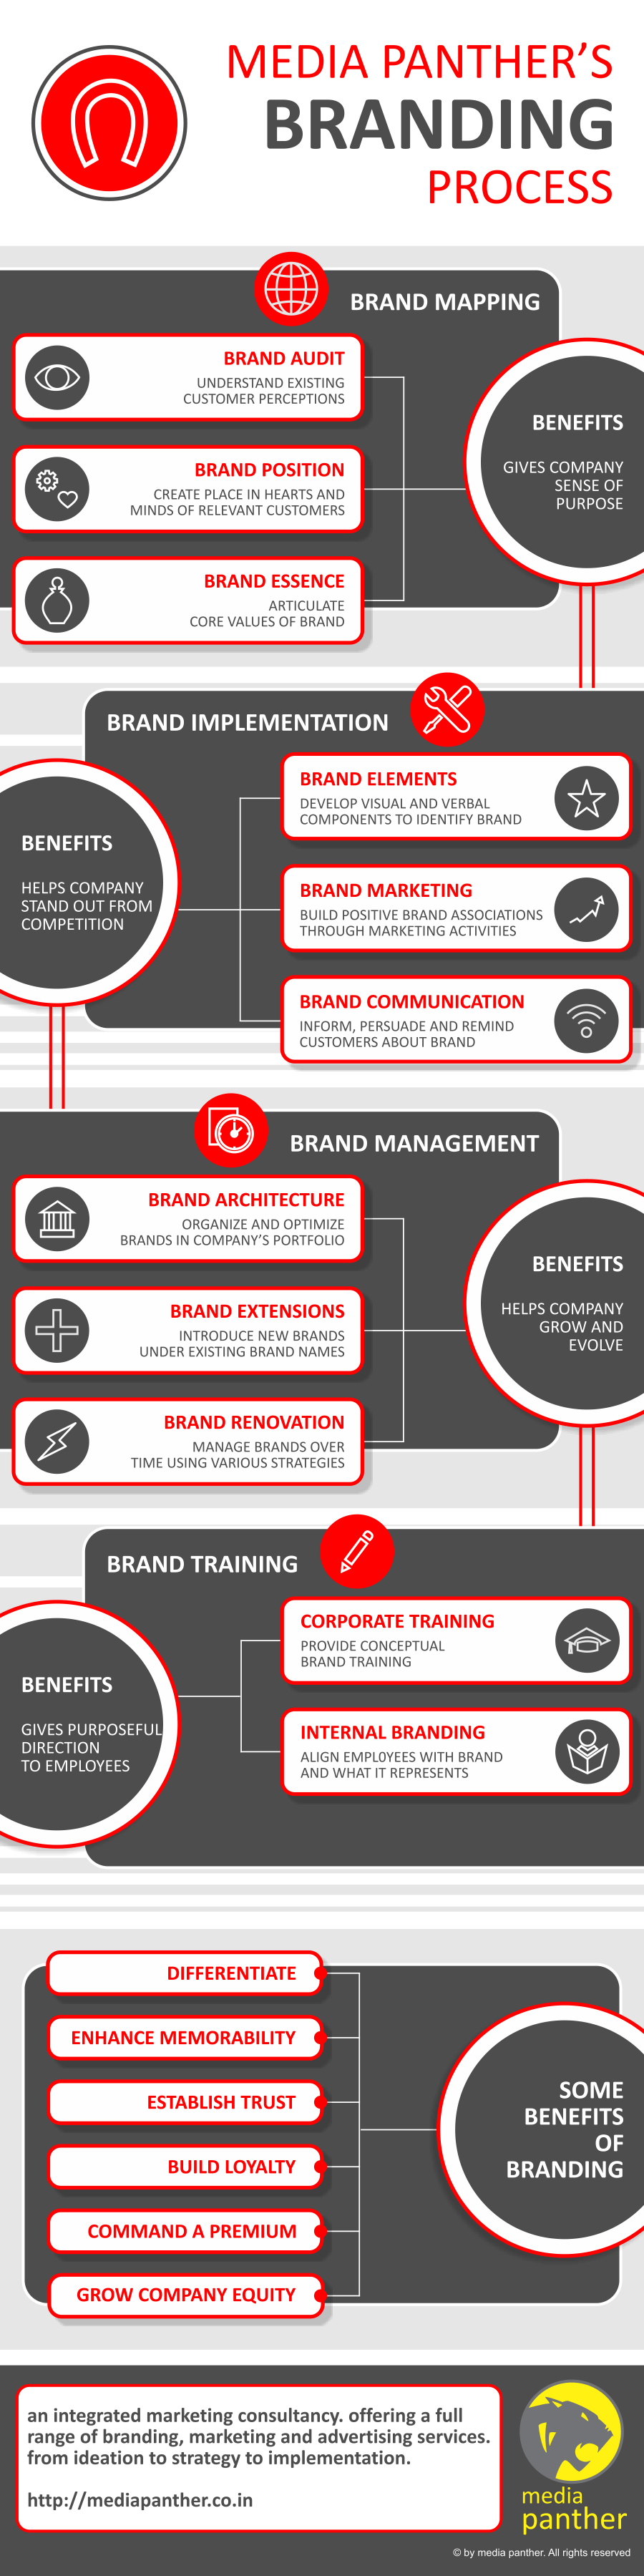 Branding Strategy and Process